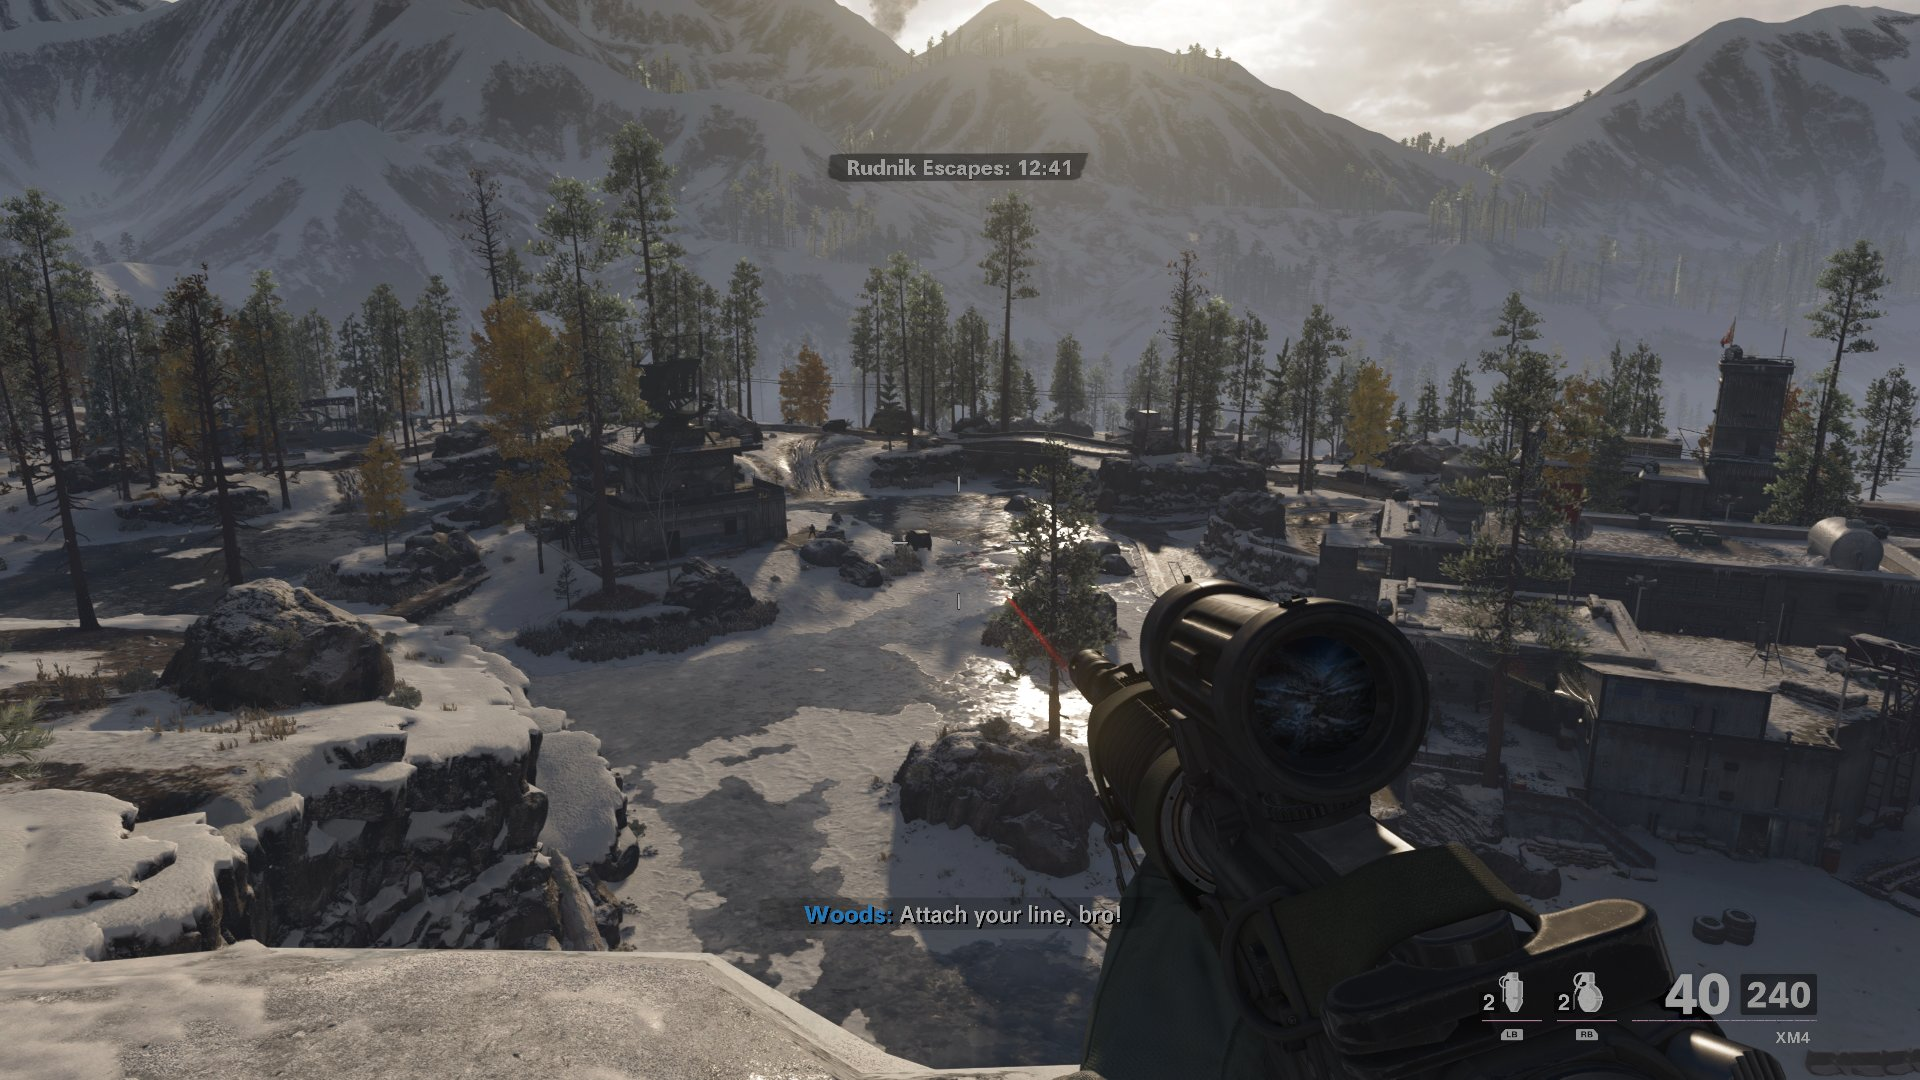 The game looks sharp on next-gen consoles, even if many of the locations are dull